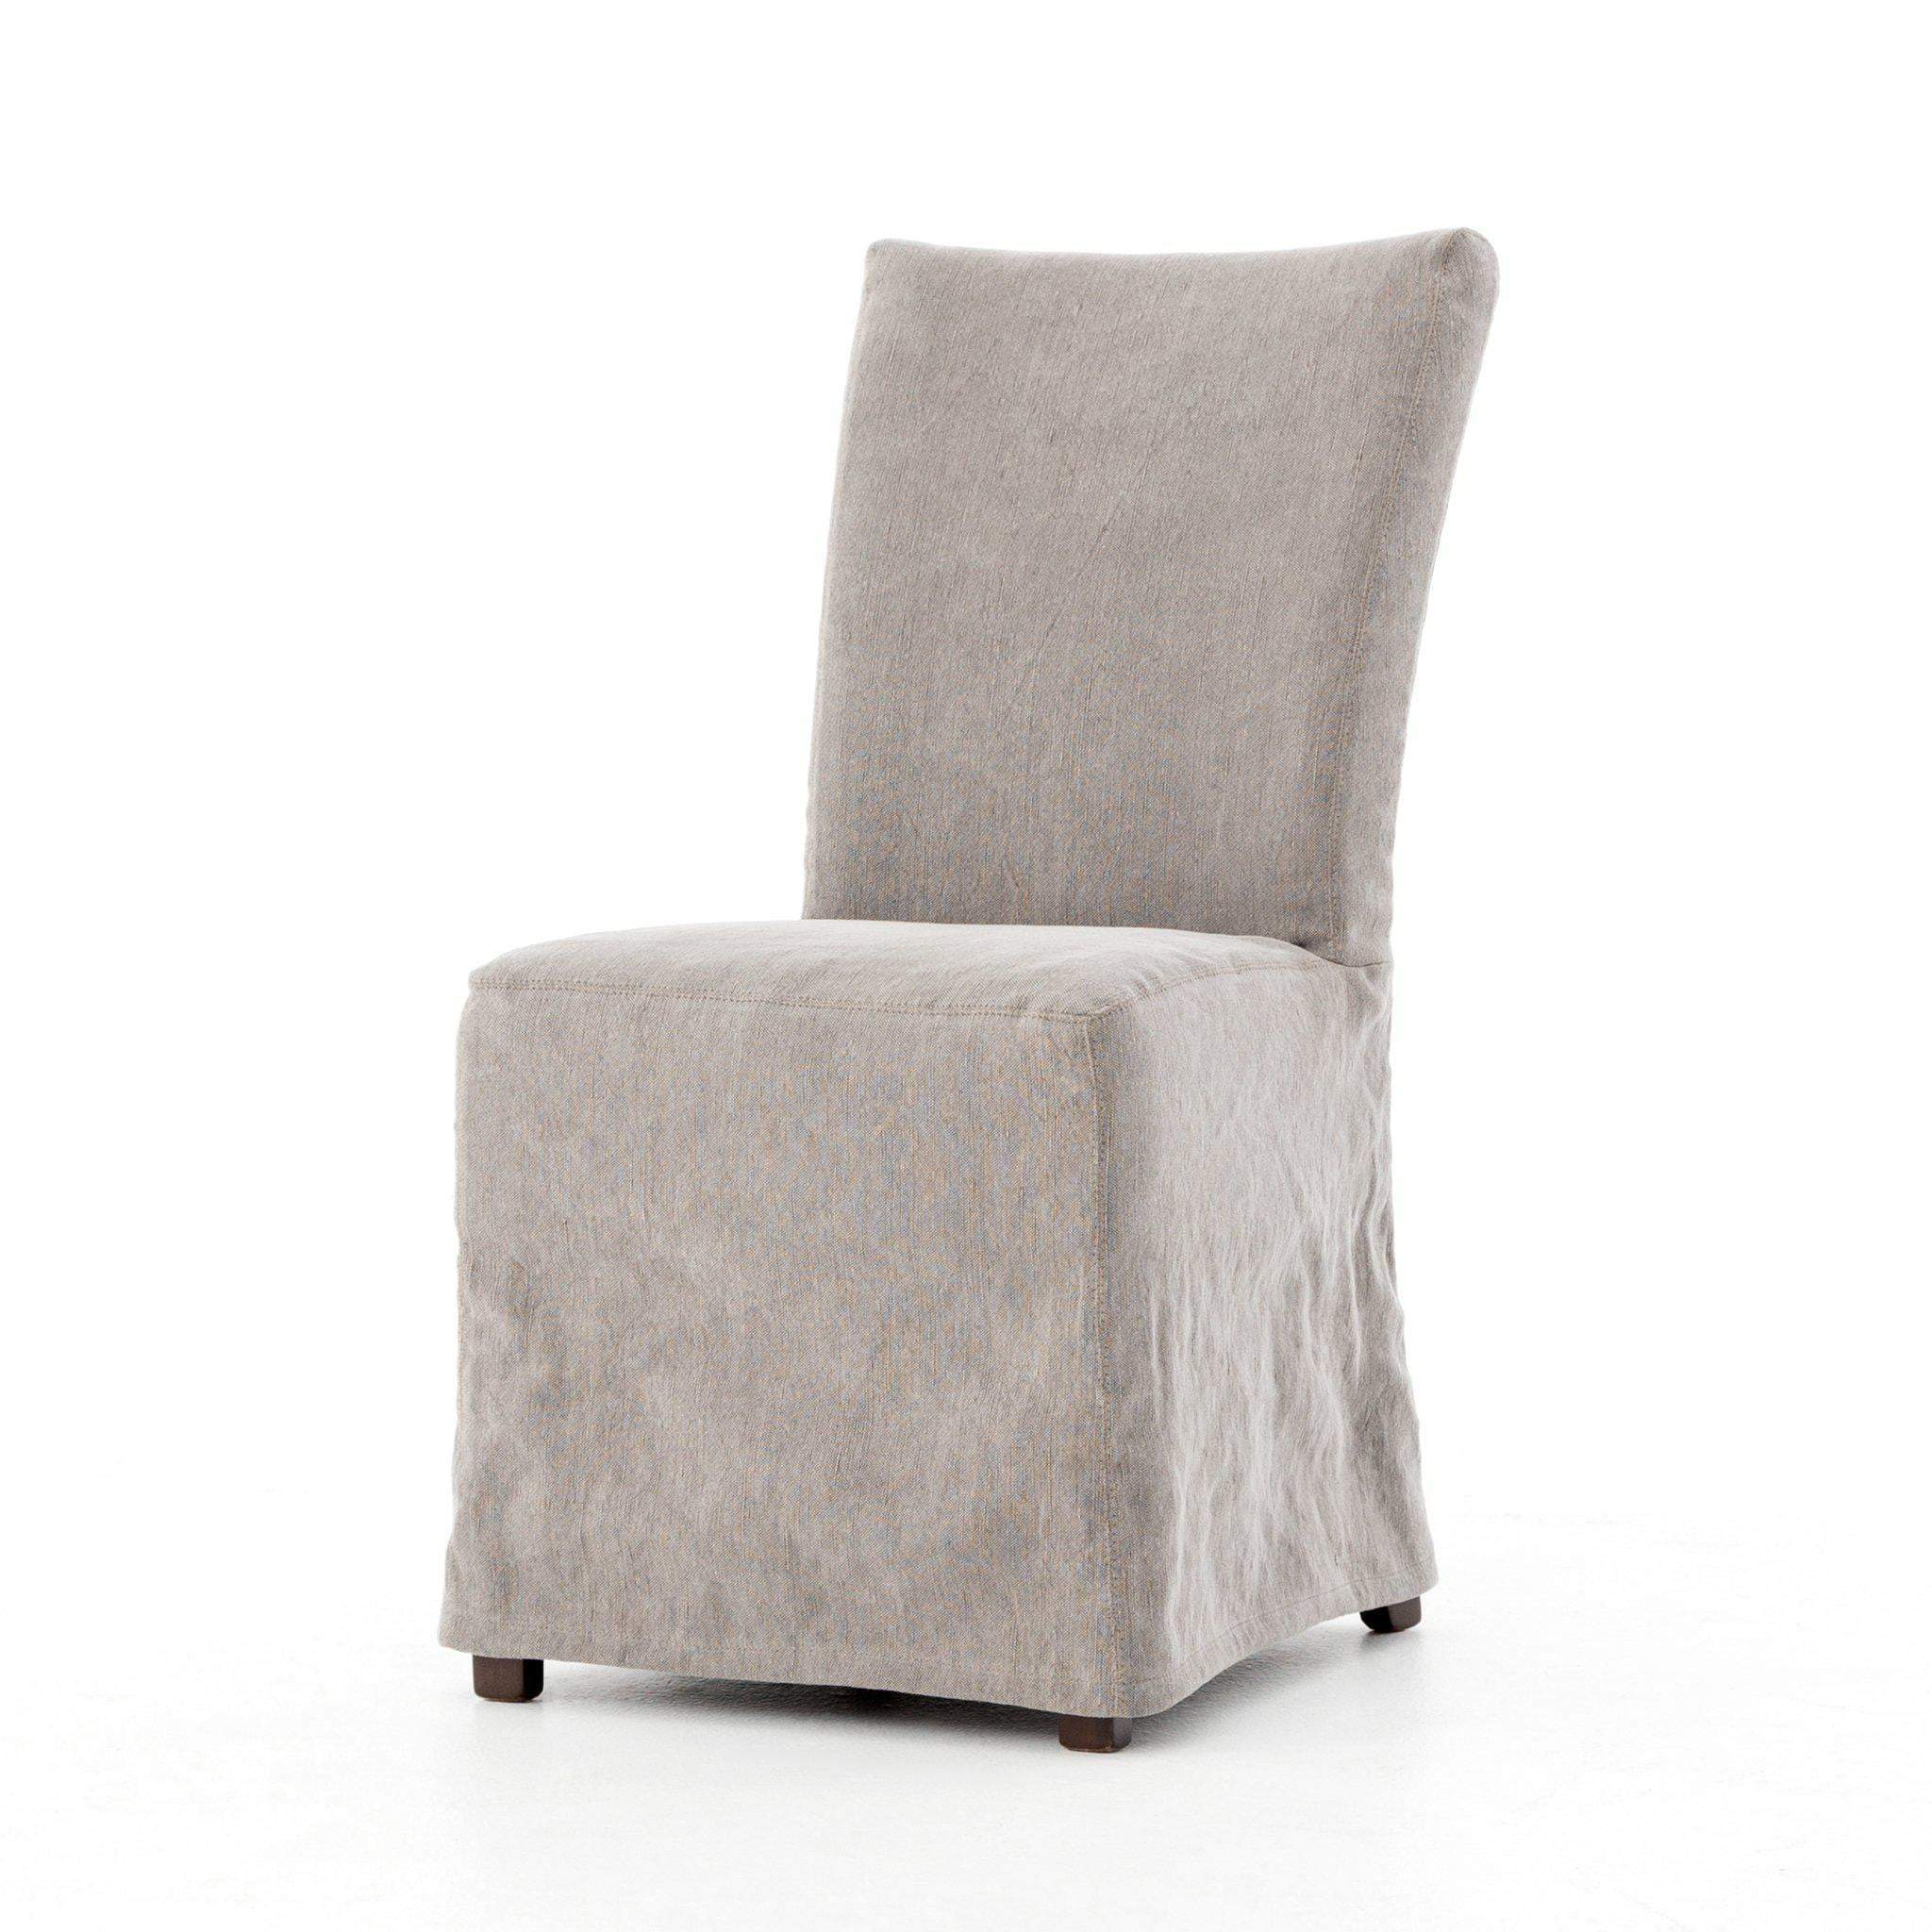 Ashford Collection Vista Dining Chair: Heather Twill Carbon-Dining Chair-Parker Gwen